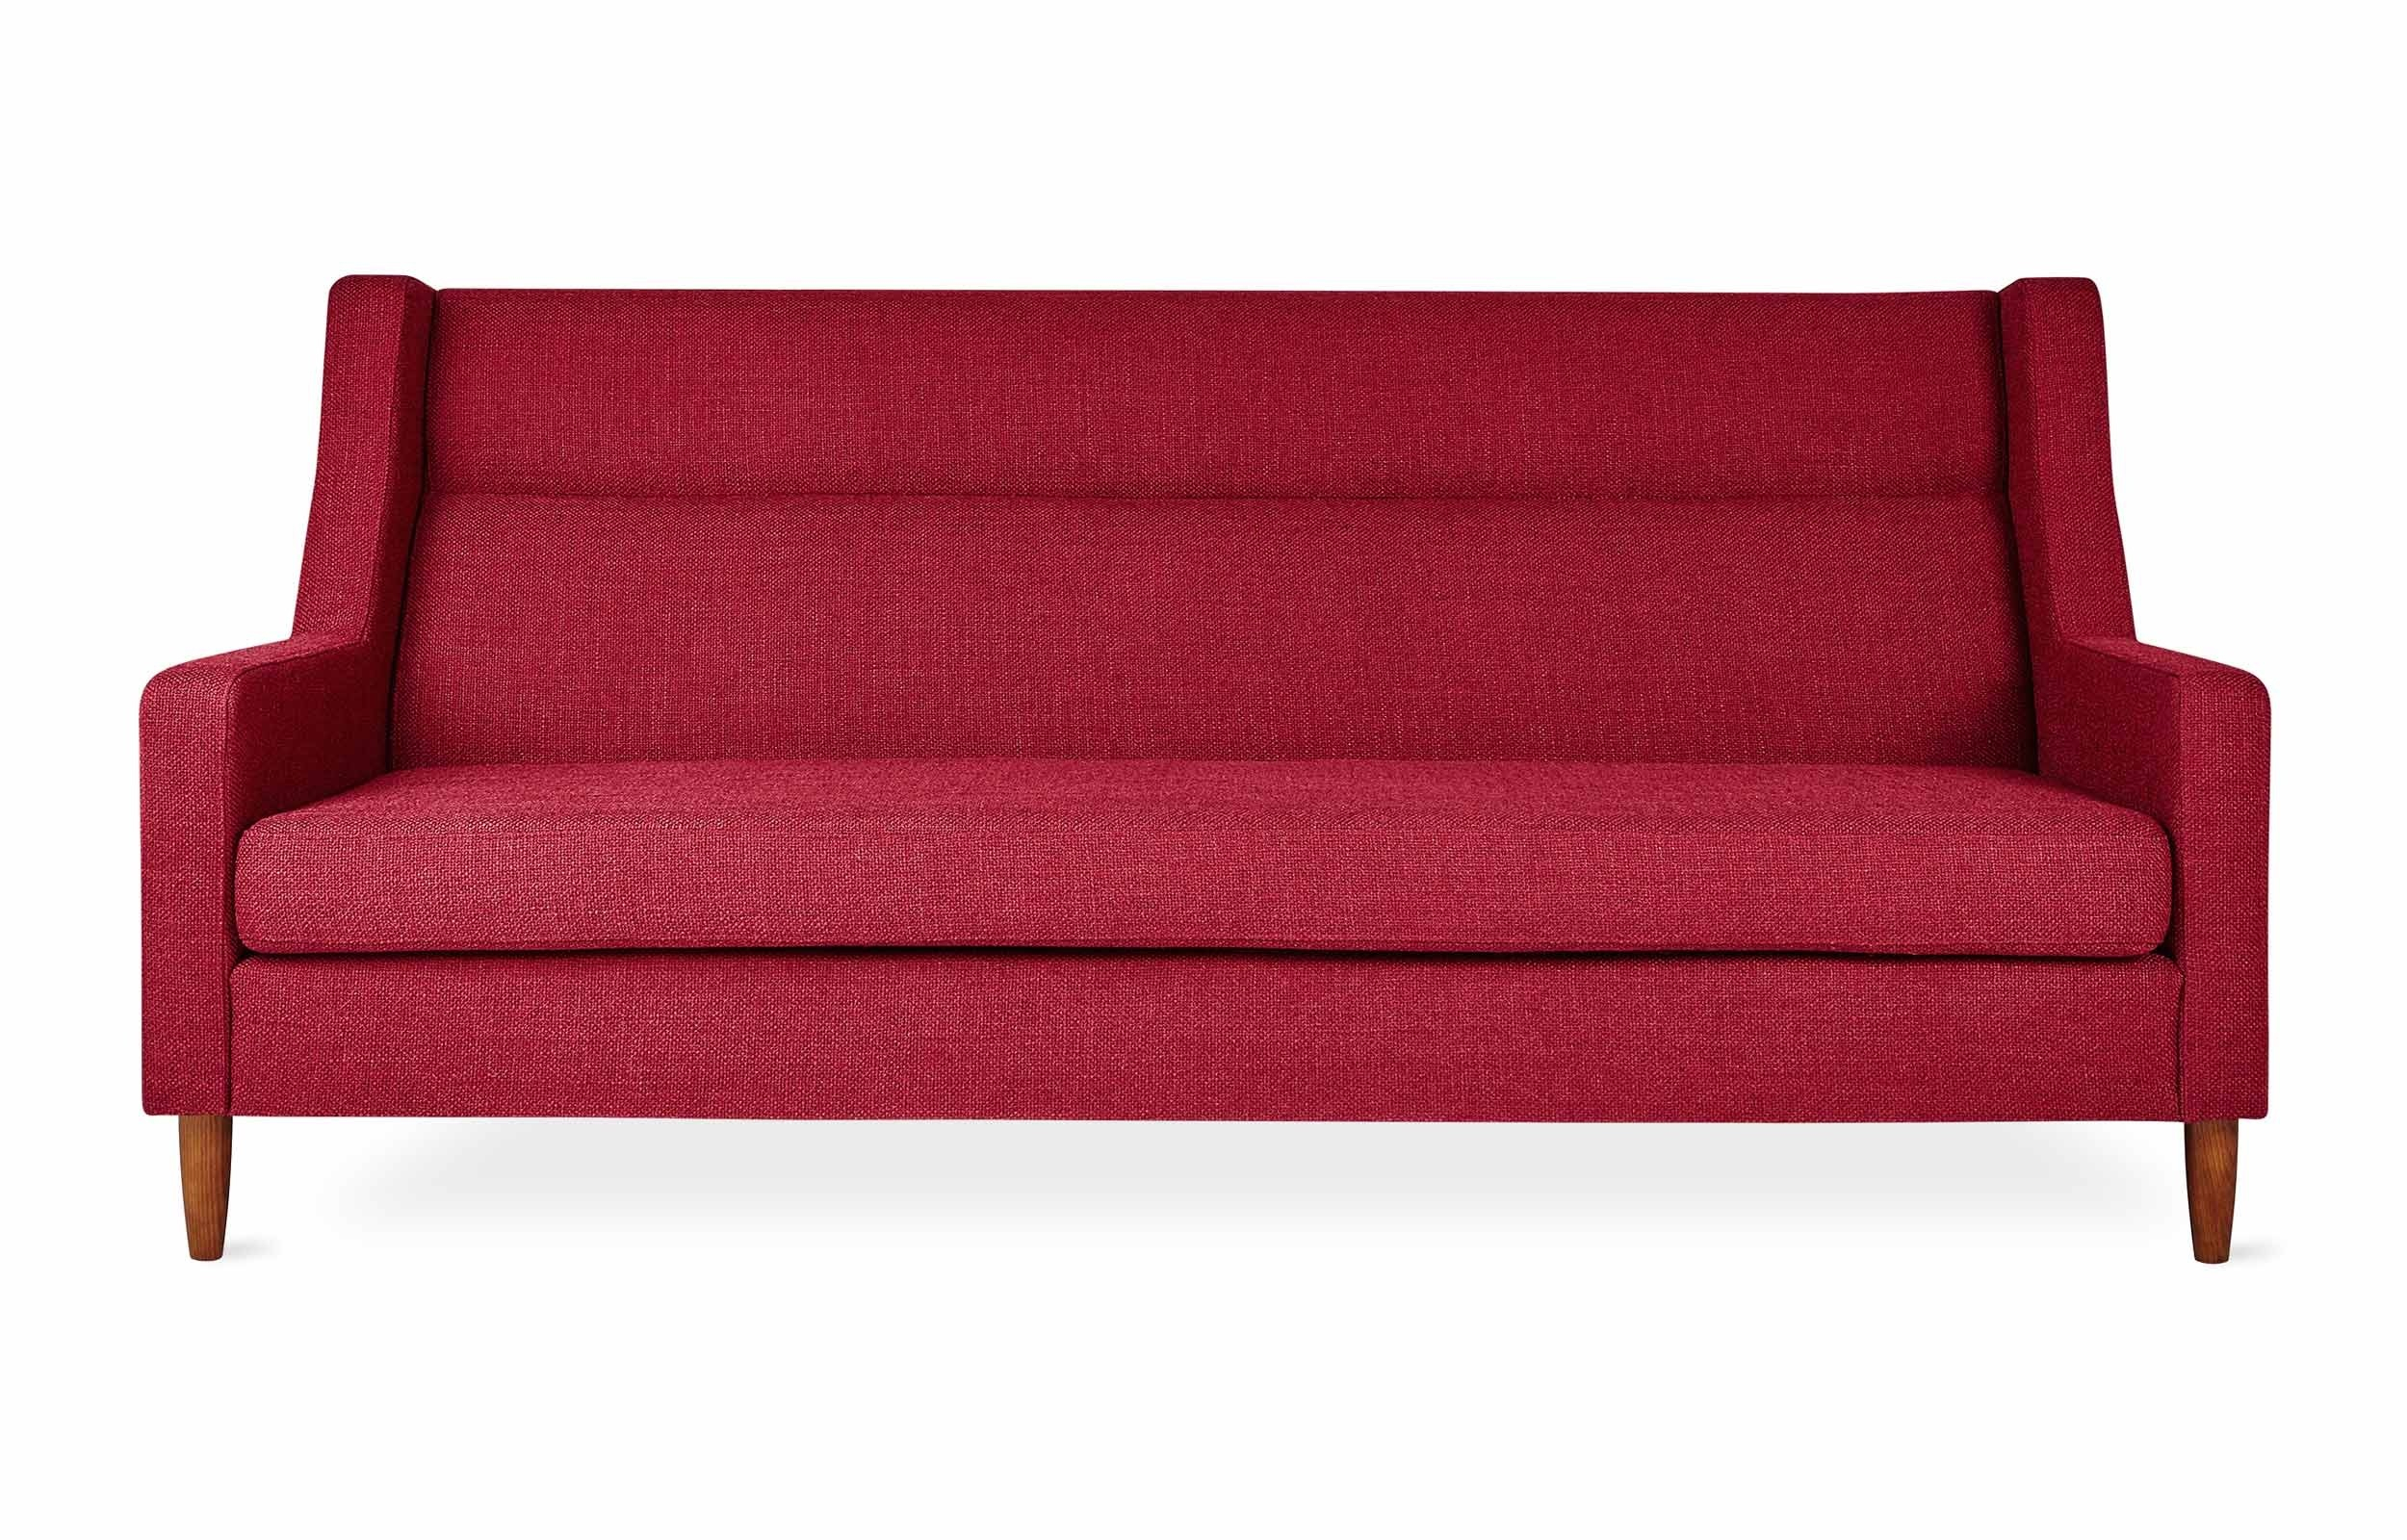 Carmichael Loft Sofa | Viesso With Loft Arm Sofa Chairs (View 14 of 25)